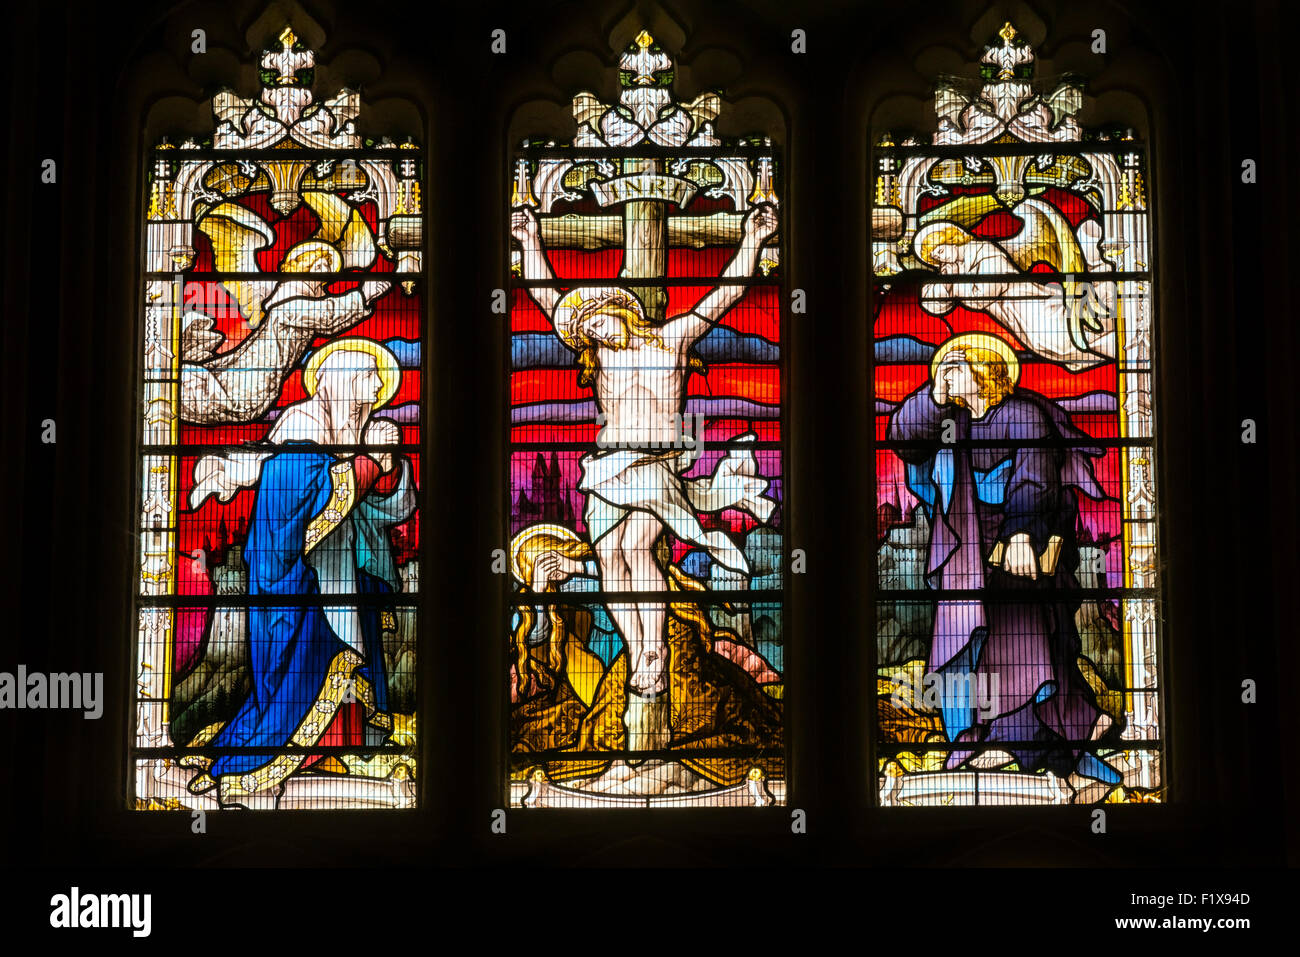 Tewkesbury Abbey church stained glass, UK. - Stock Image